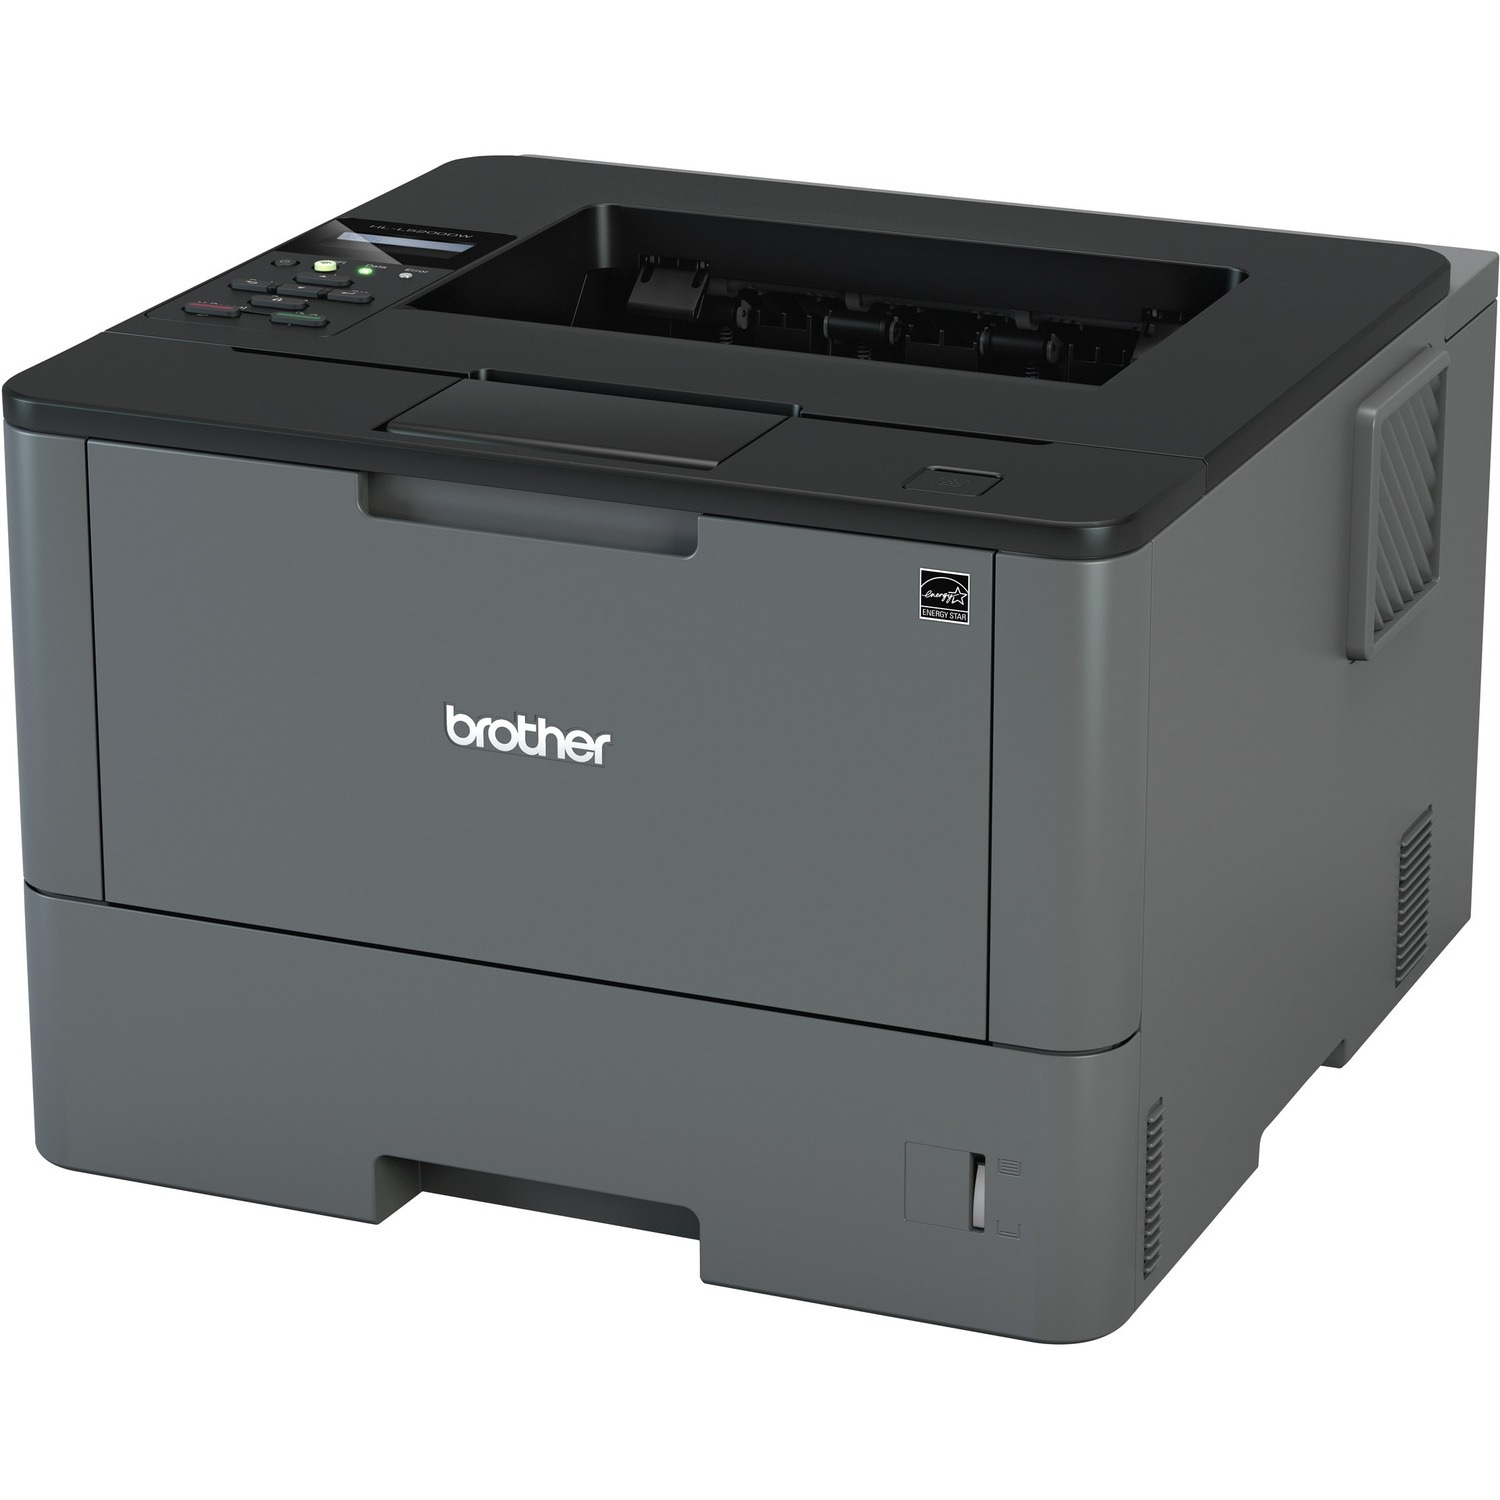 Brother HL-L5200DW Laser Printer - Monochrome - 1200 x 1200 dpi Print